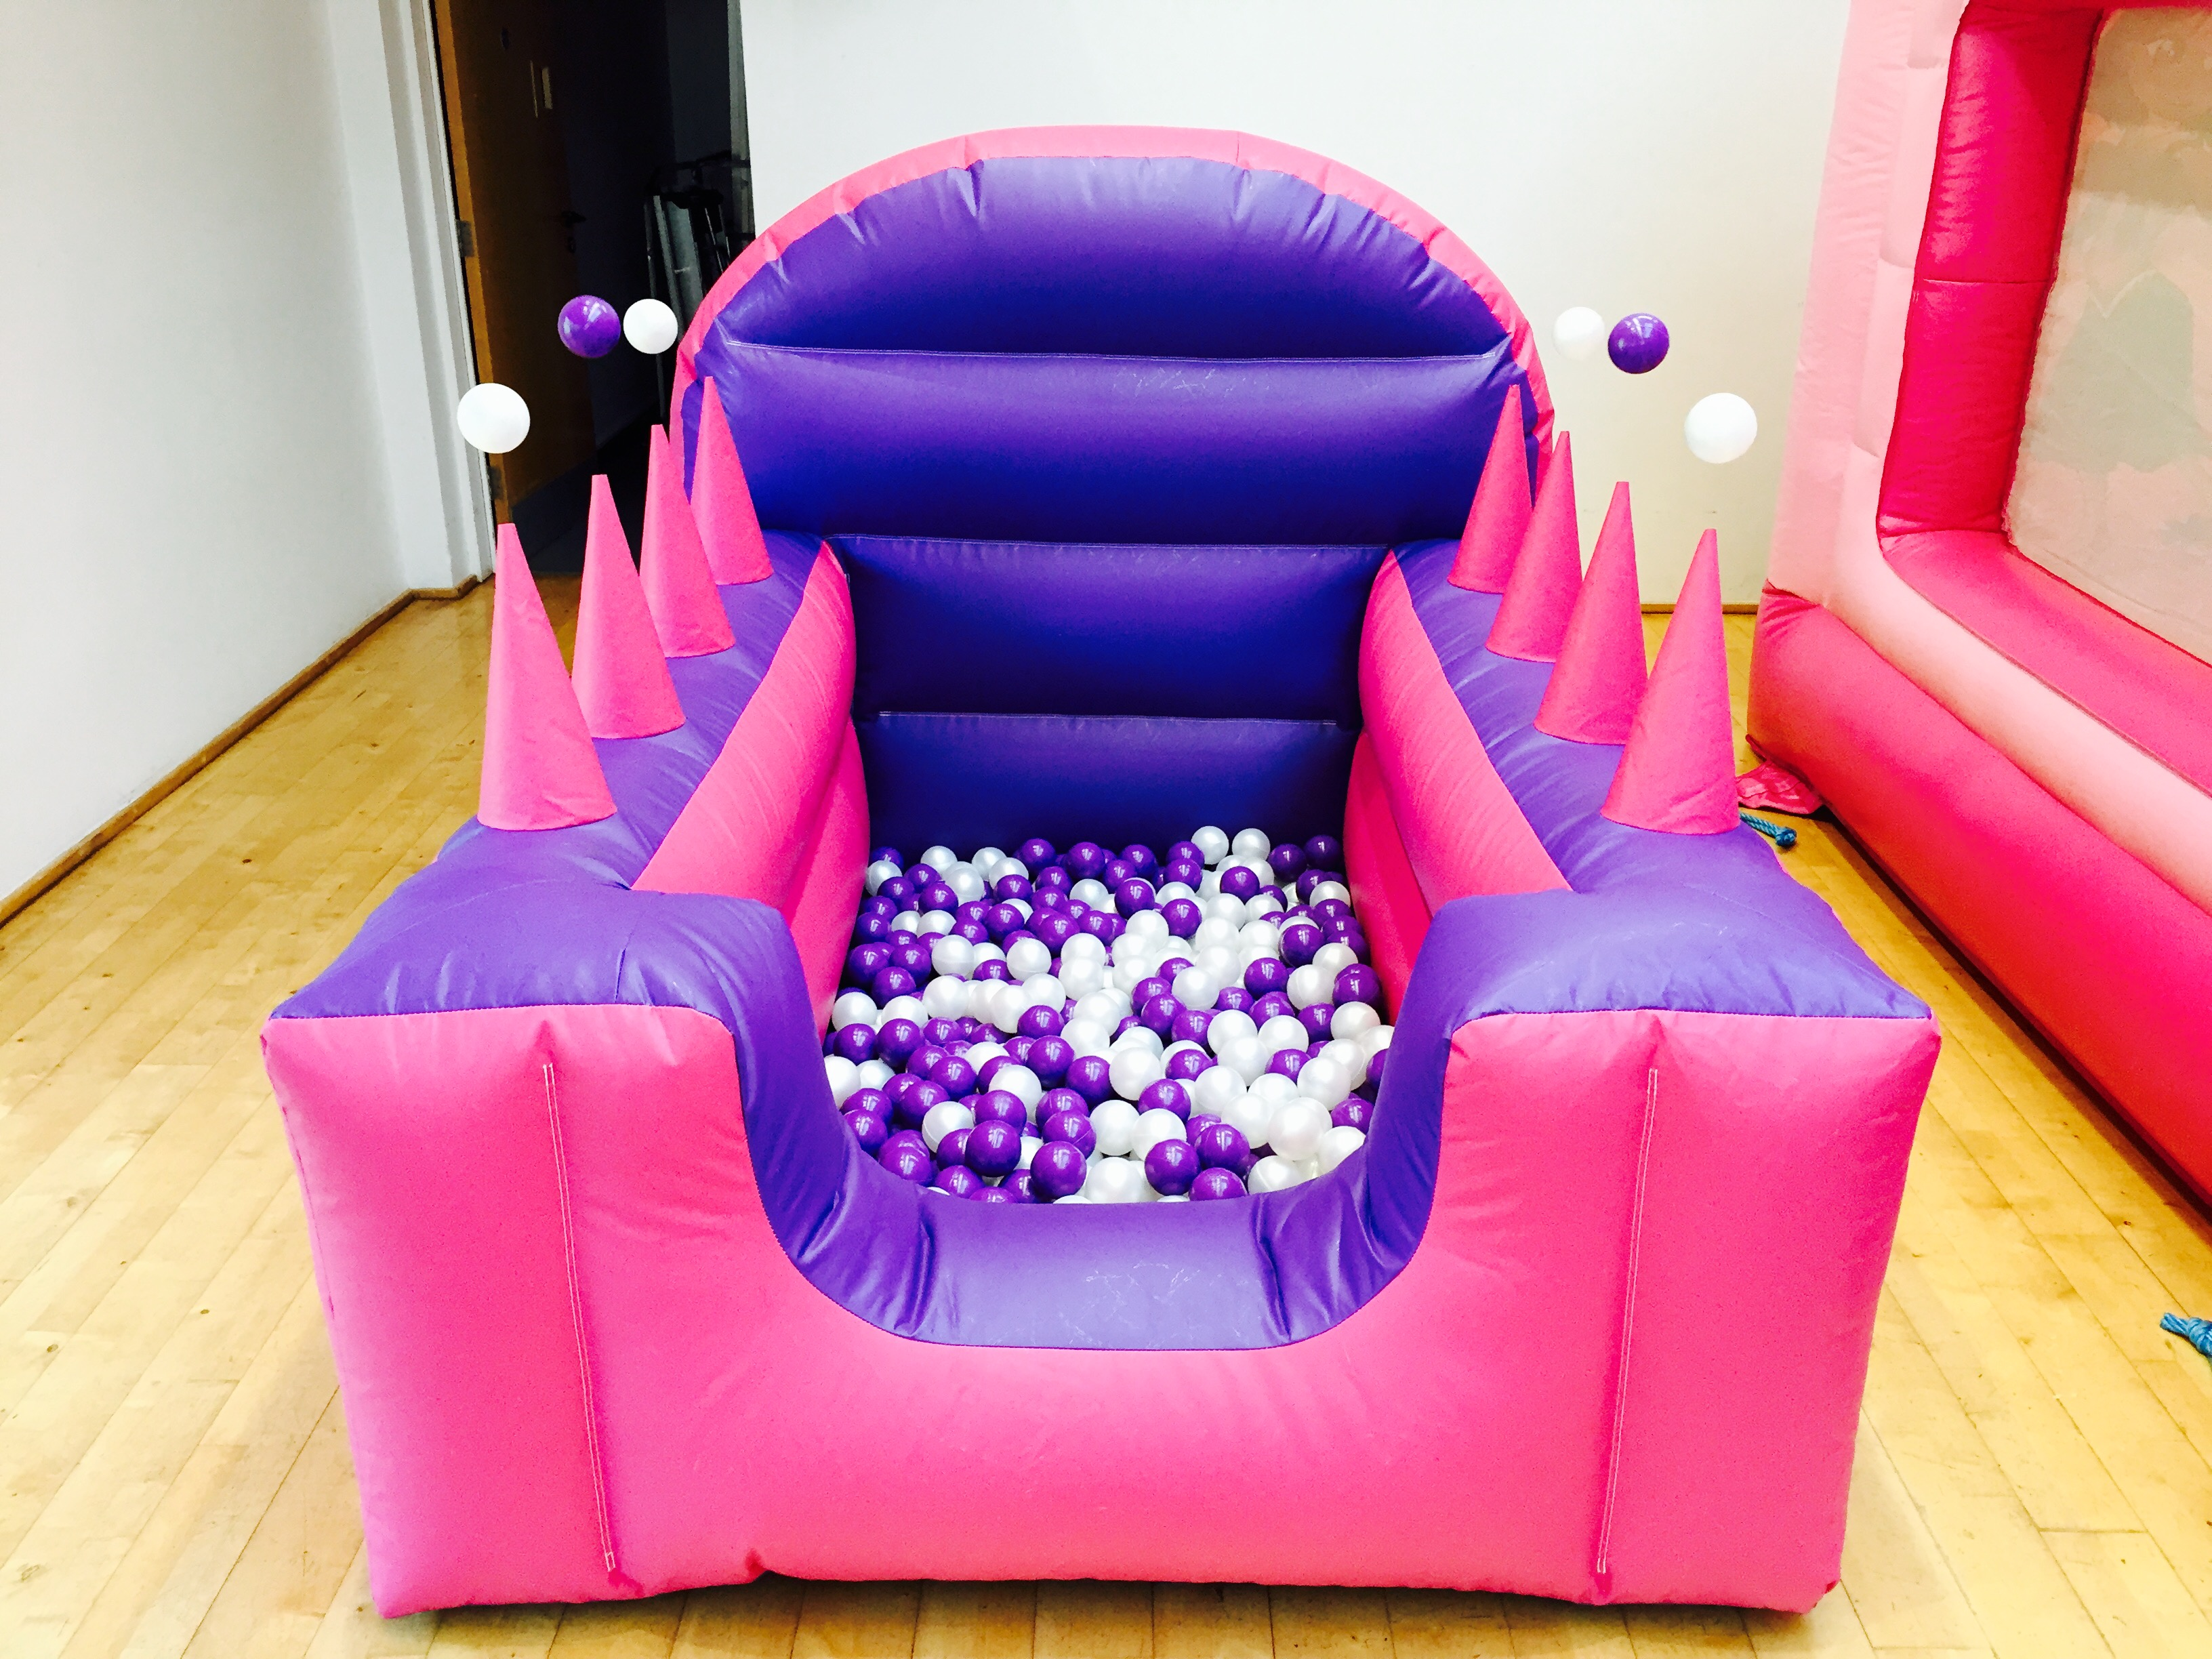 Ball pool hire in Newton Abbot, Torbay, Torquay & Paignton